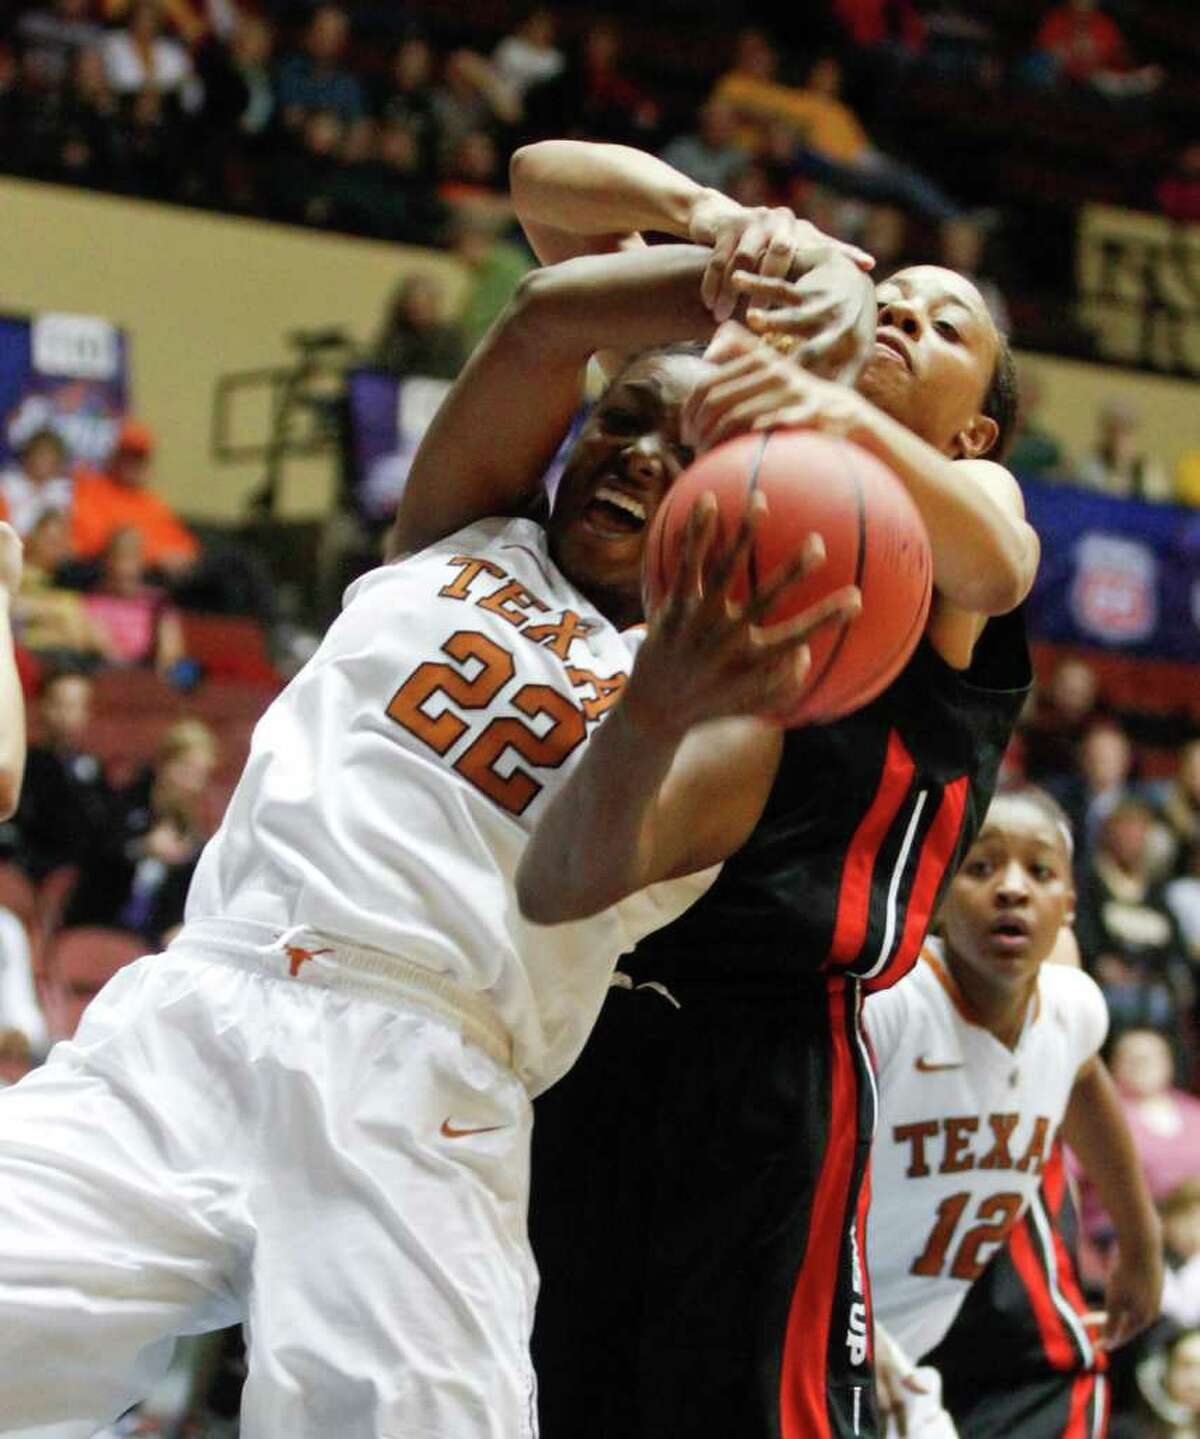 Texas guard Ashley Gayle (22) and Texas Tech guard Ashleigh Fontenette battle for a rebound in the second half of a first-round of the Big 12 Conference championship NCAA college basketball game on Wednesday, March 7, 2012, in Kansas City. (AP Photo/Jeff Tuttle)